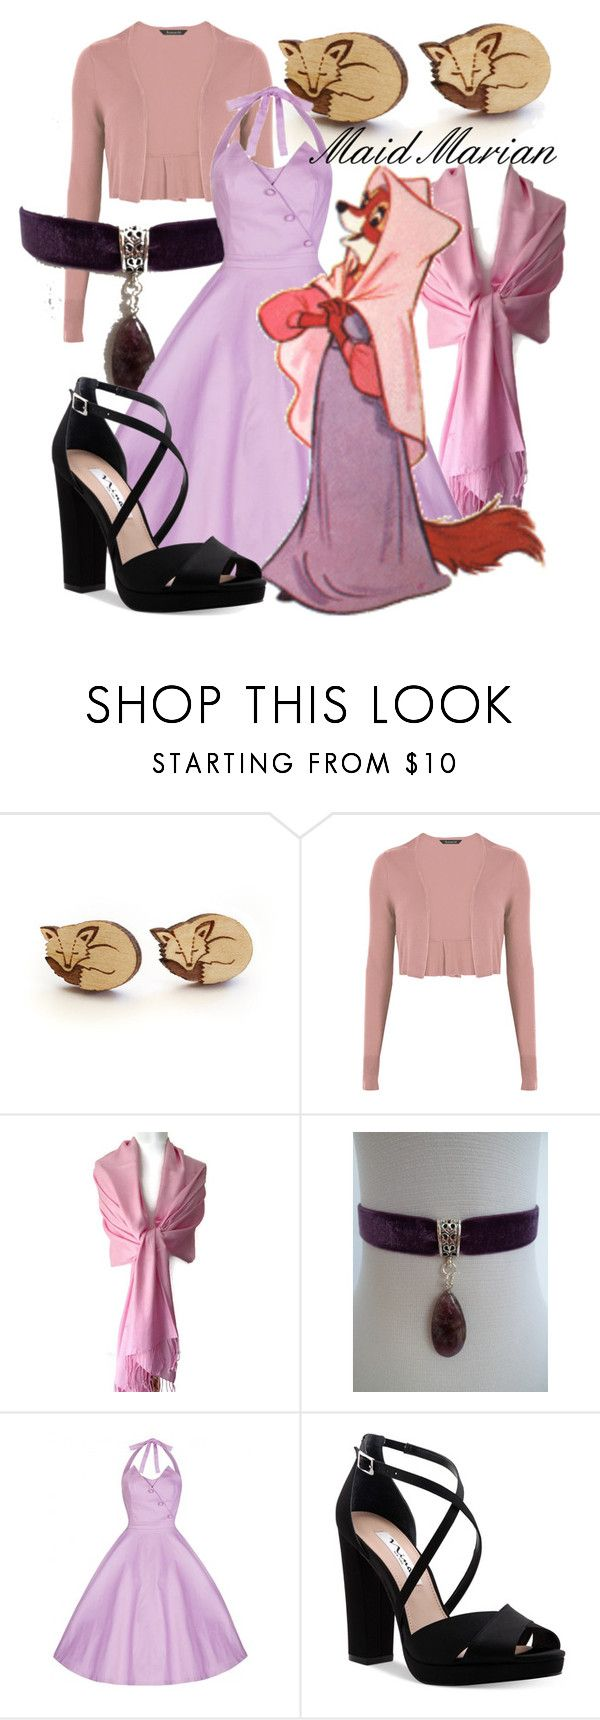 """Maid Marian (A Disney-Inspired Outfit)"" by one-little-spark ❤ liked on Polyvore featuring Nina, disney and disneybound"